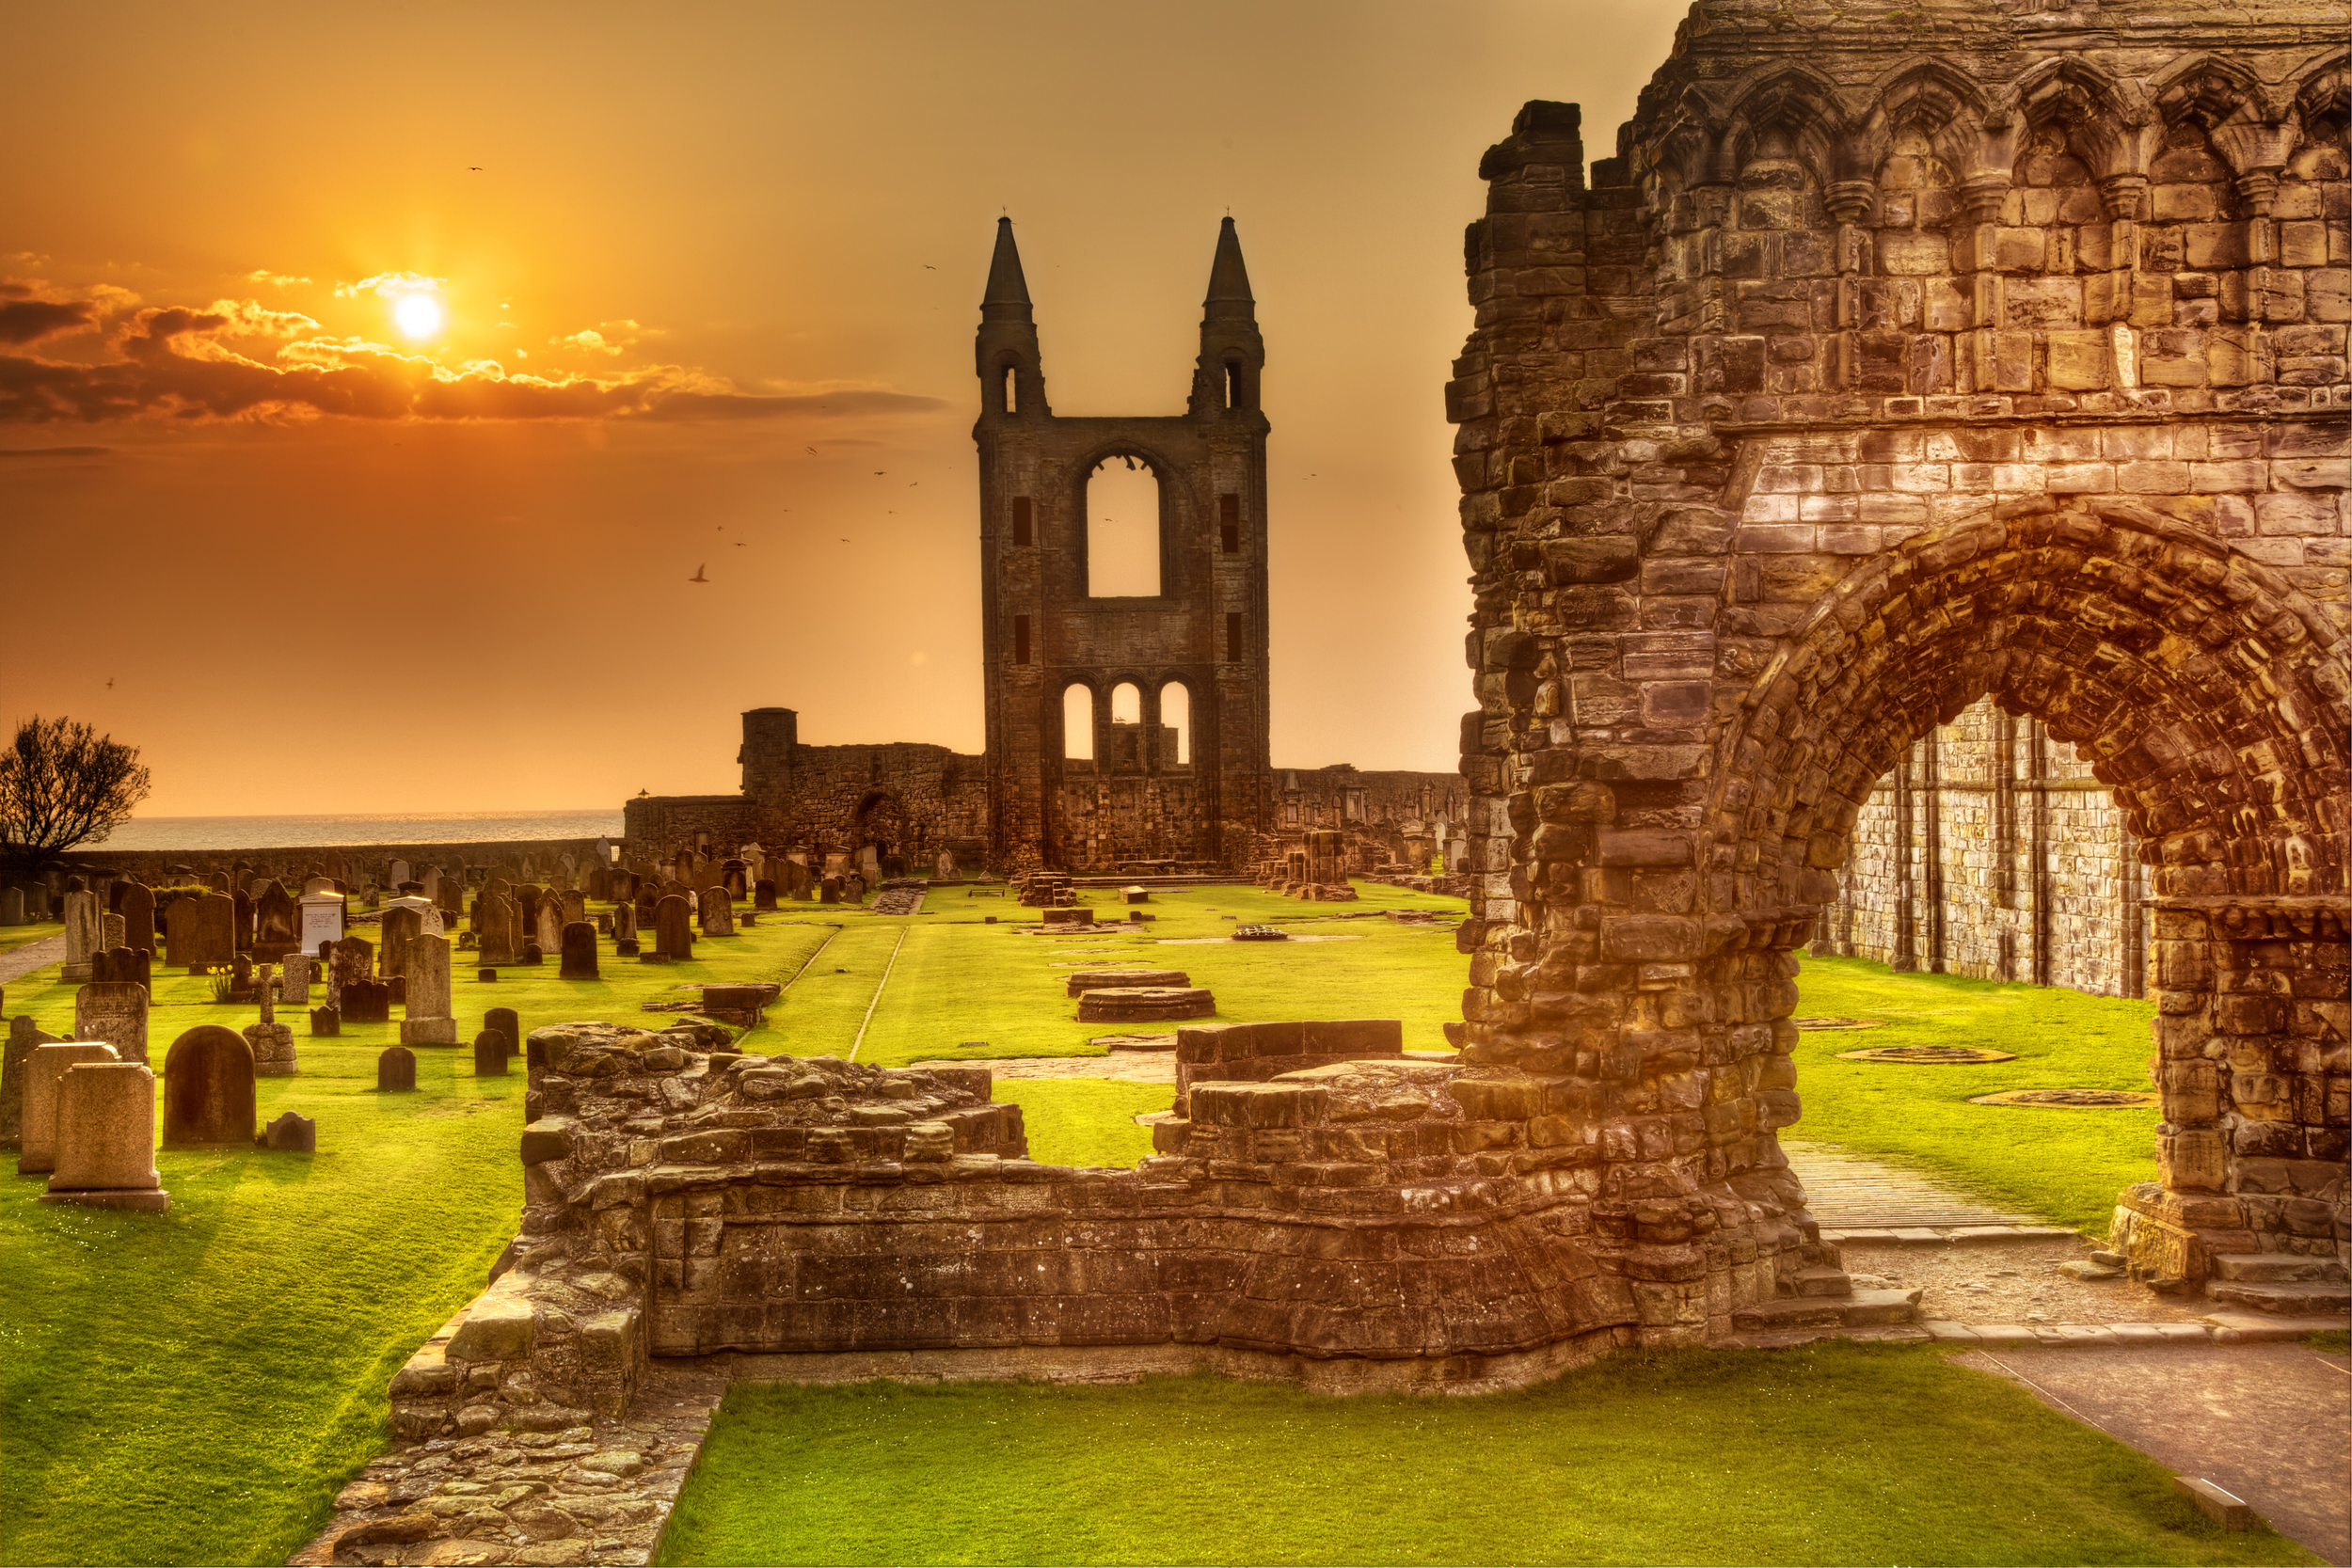 st-andrews-cathedral-fullres (2)